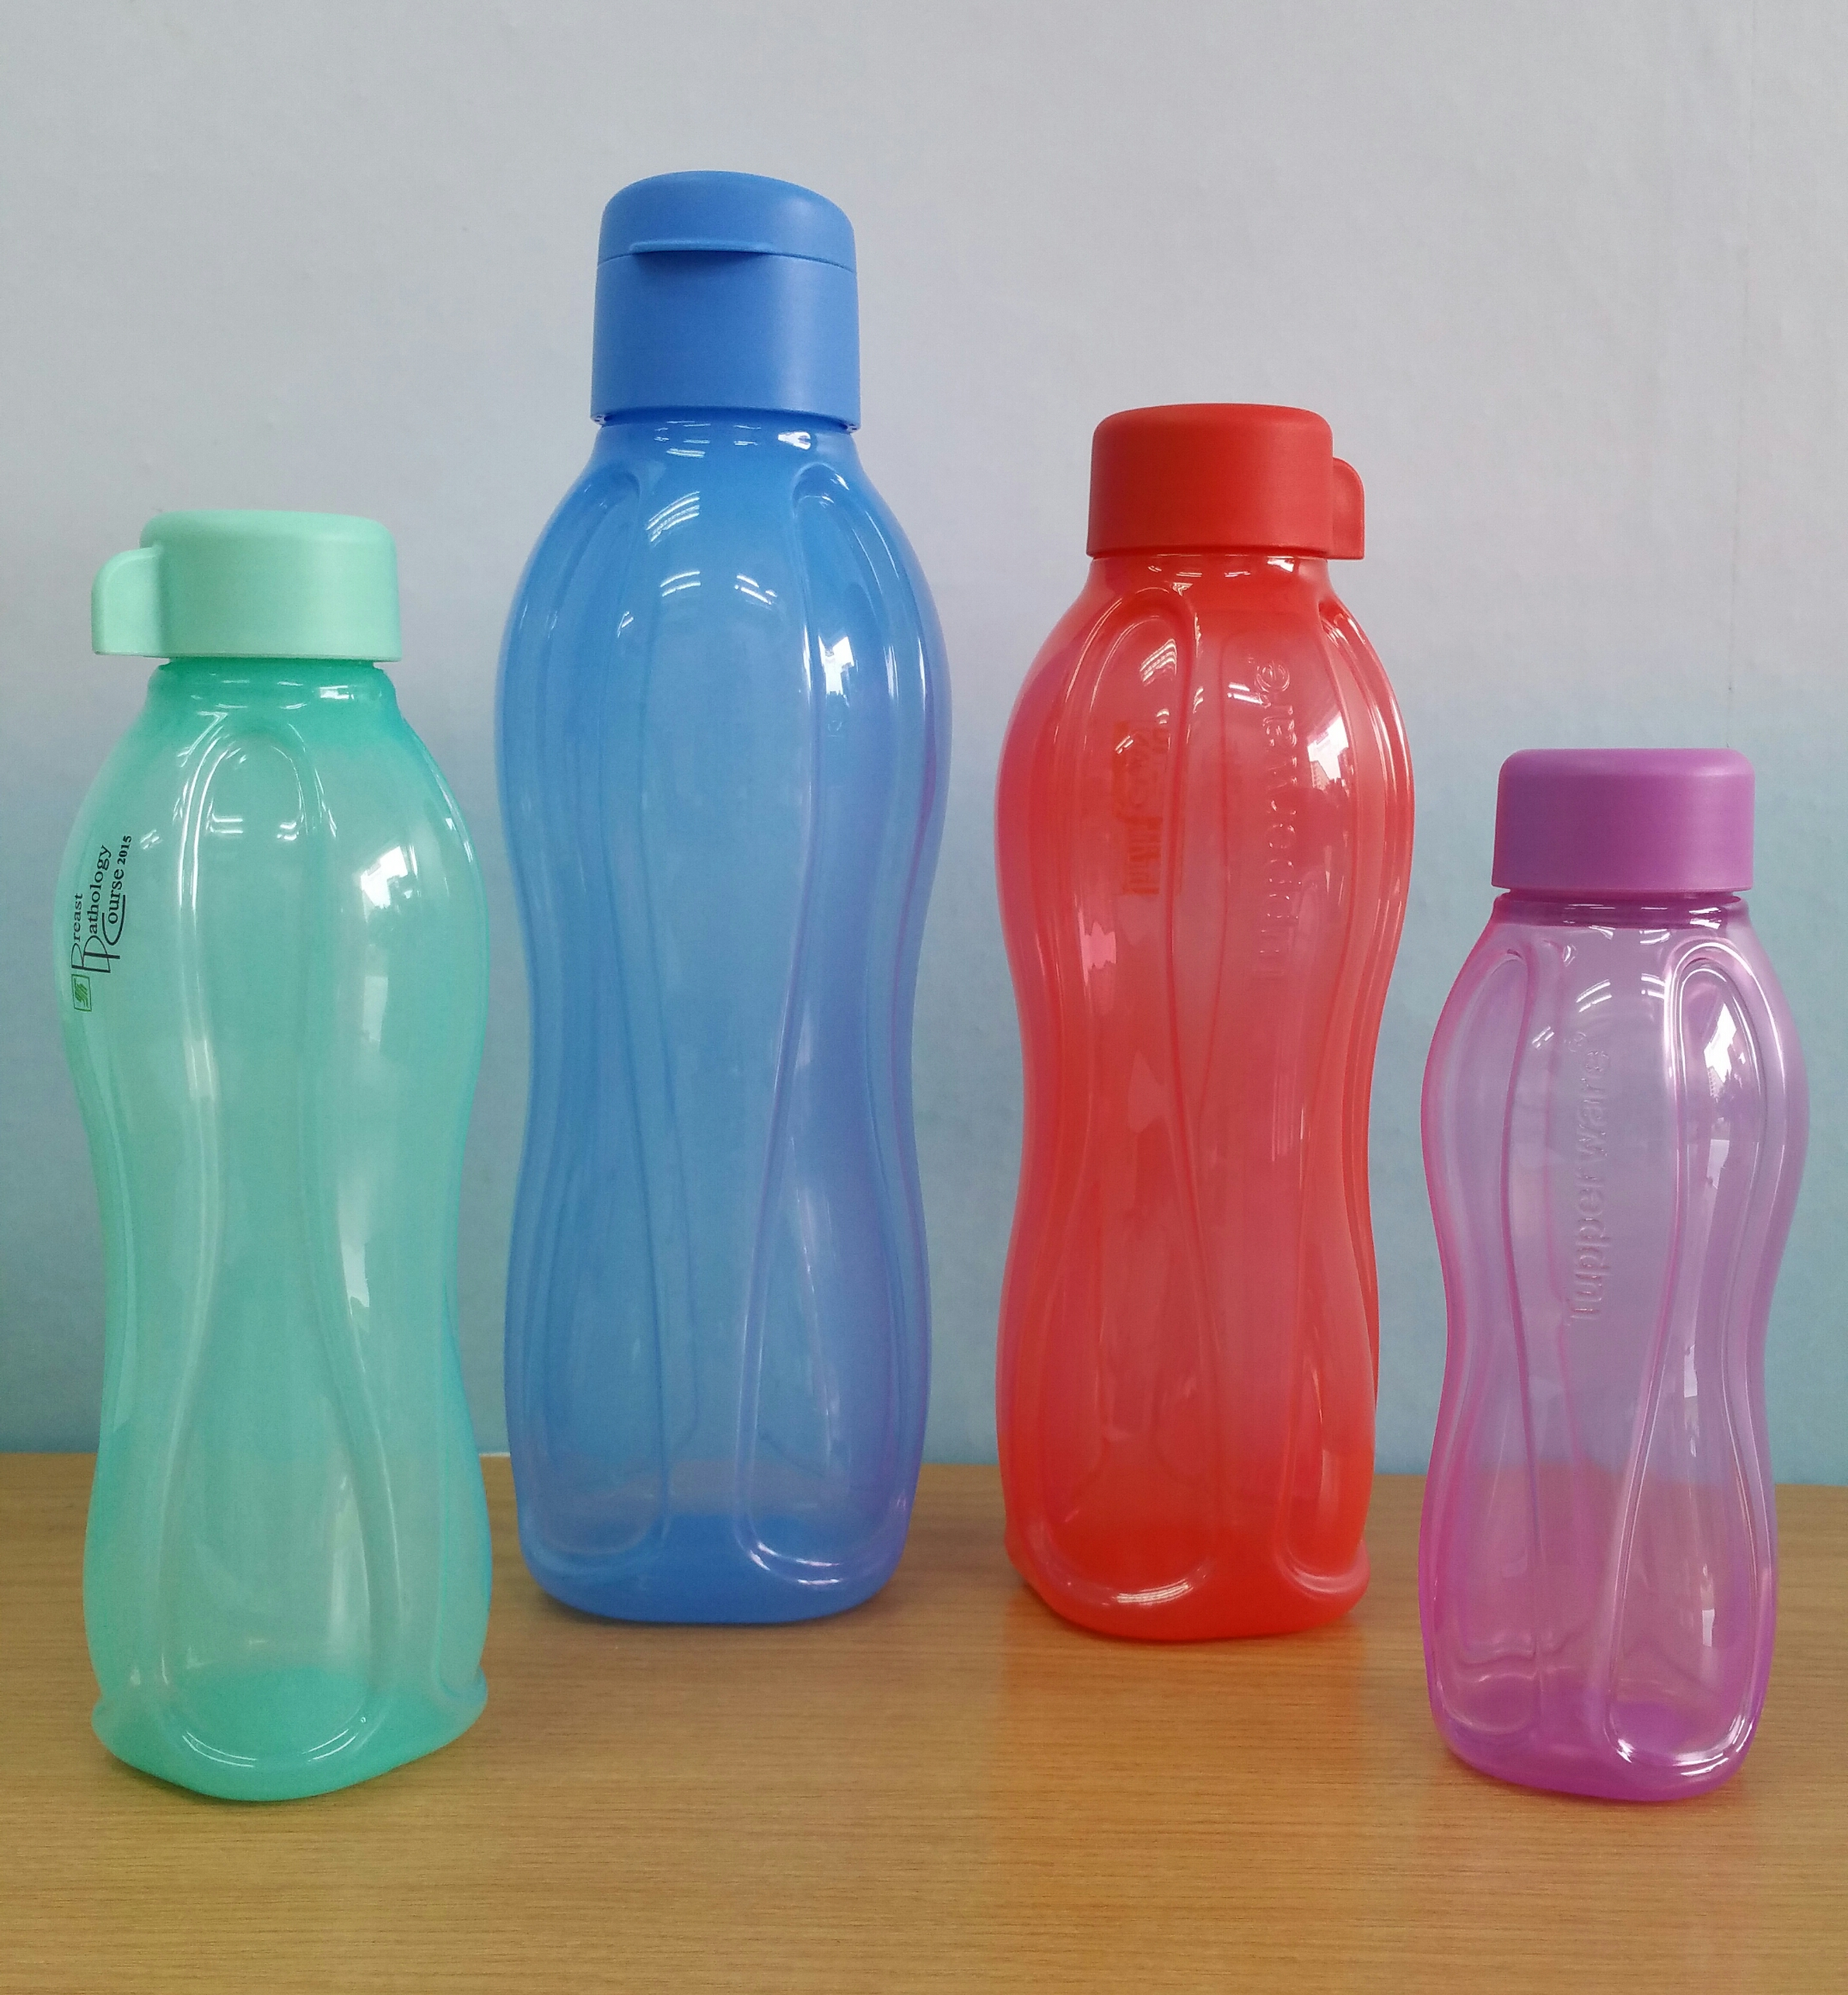 Very expensive and overrated products - TUPPERWARE INDIA PVT LTD ...